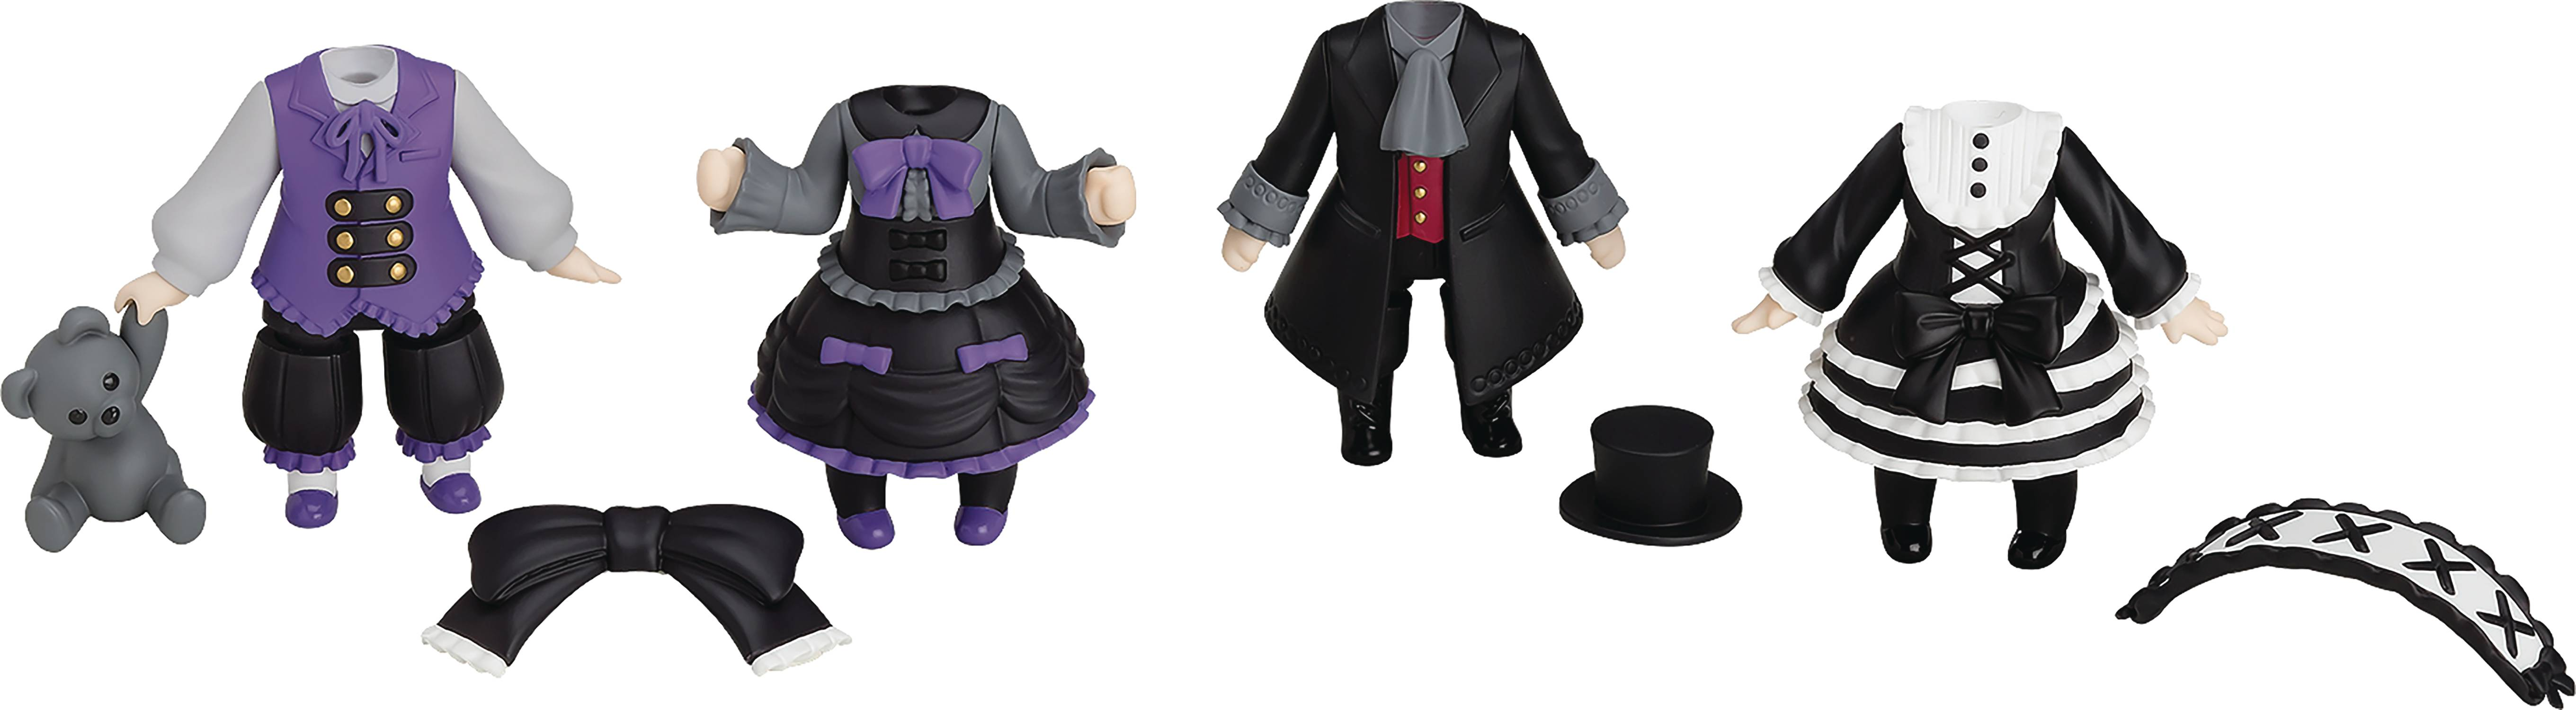 NENDOROID MORE DRESS UP GOTHIC LOLITA 4PC BMB DS